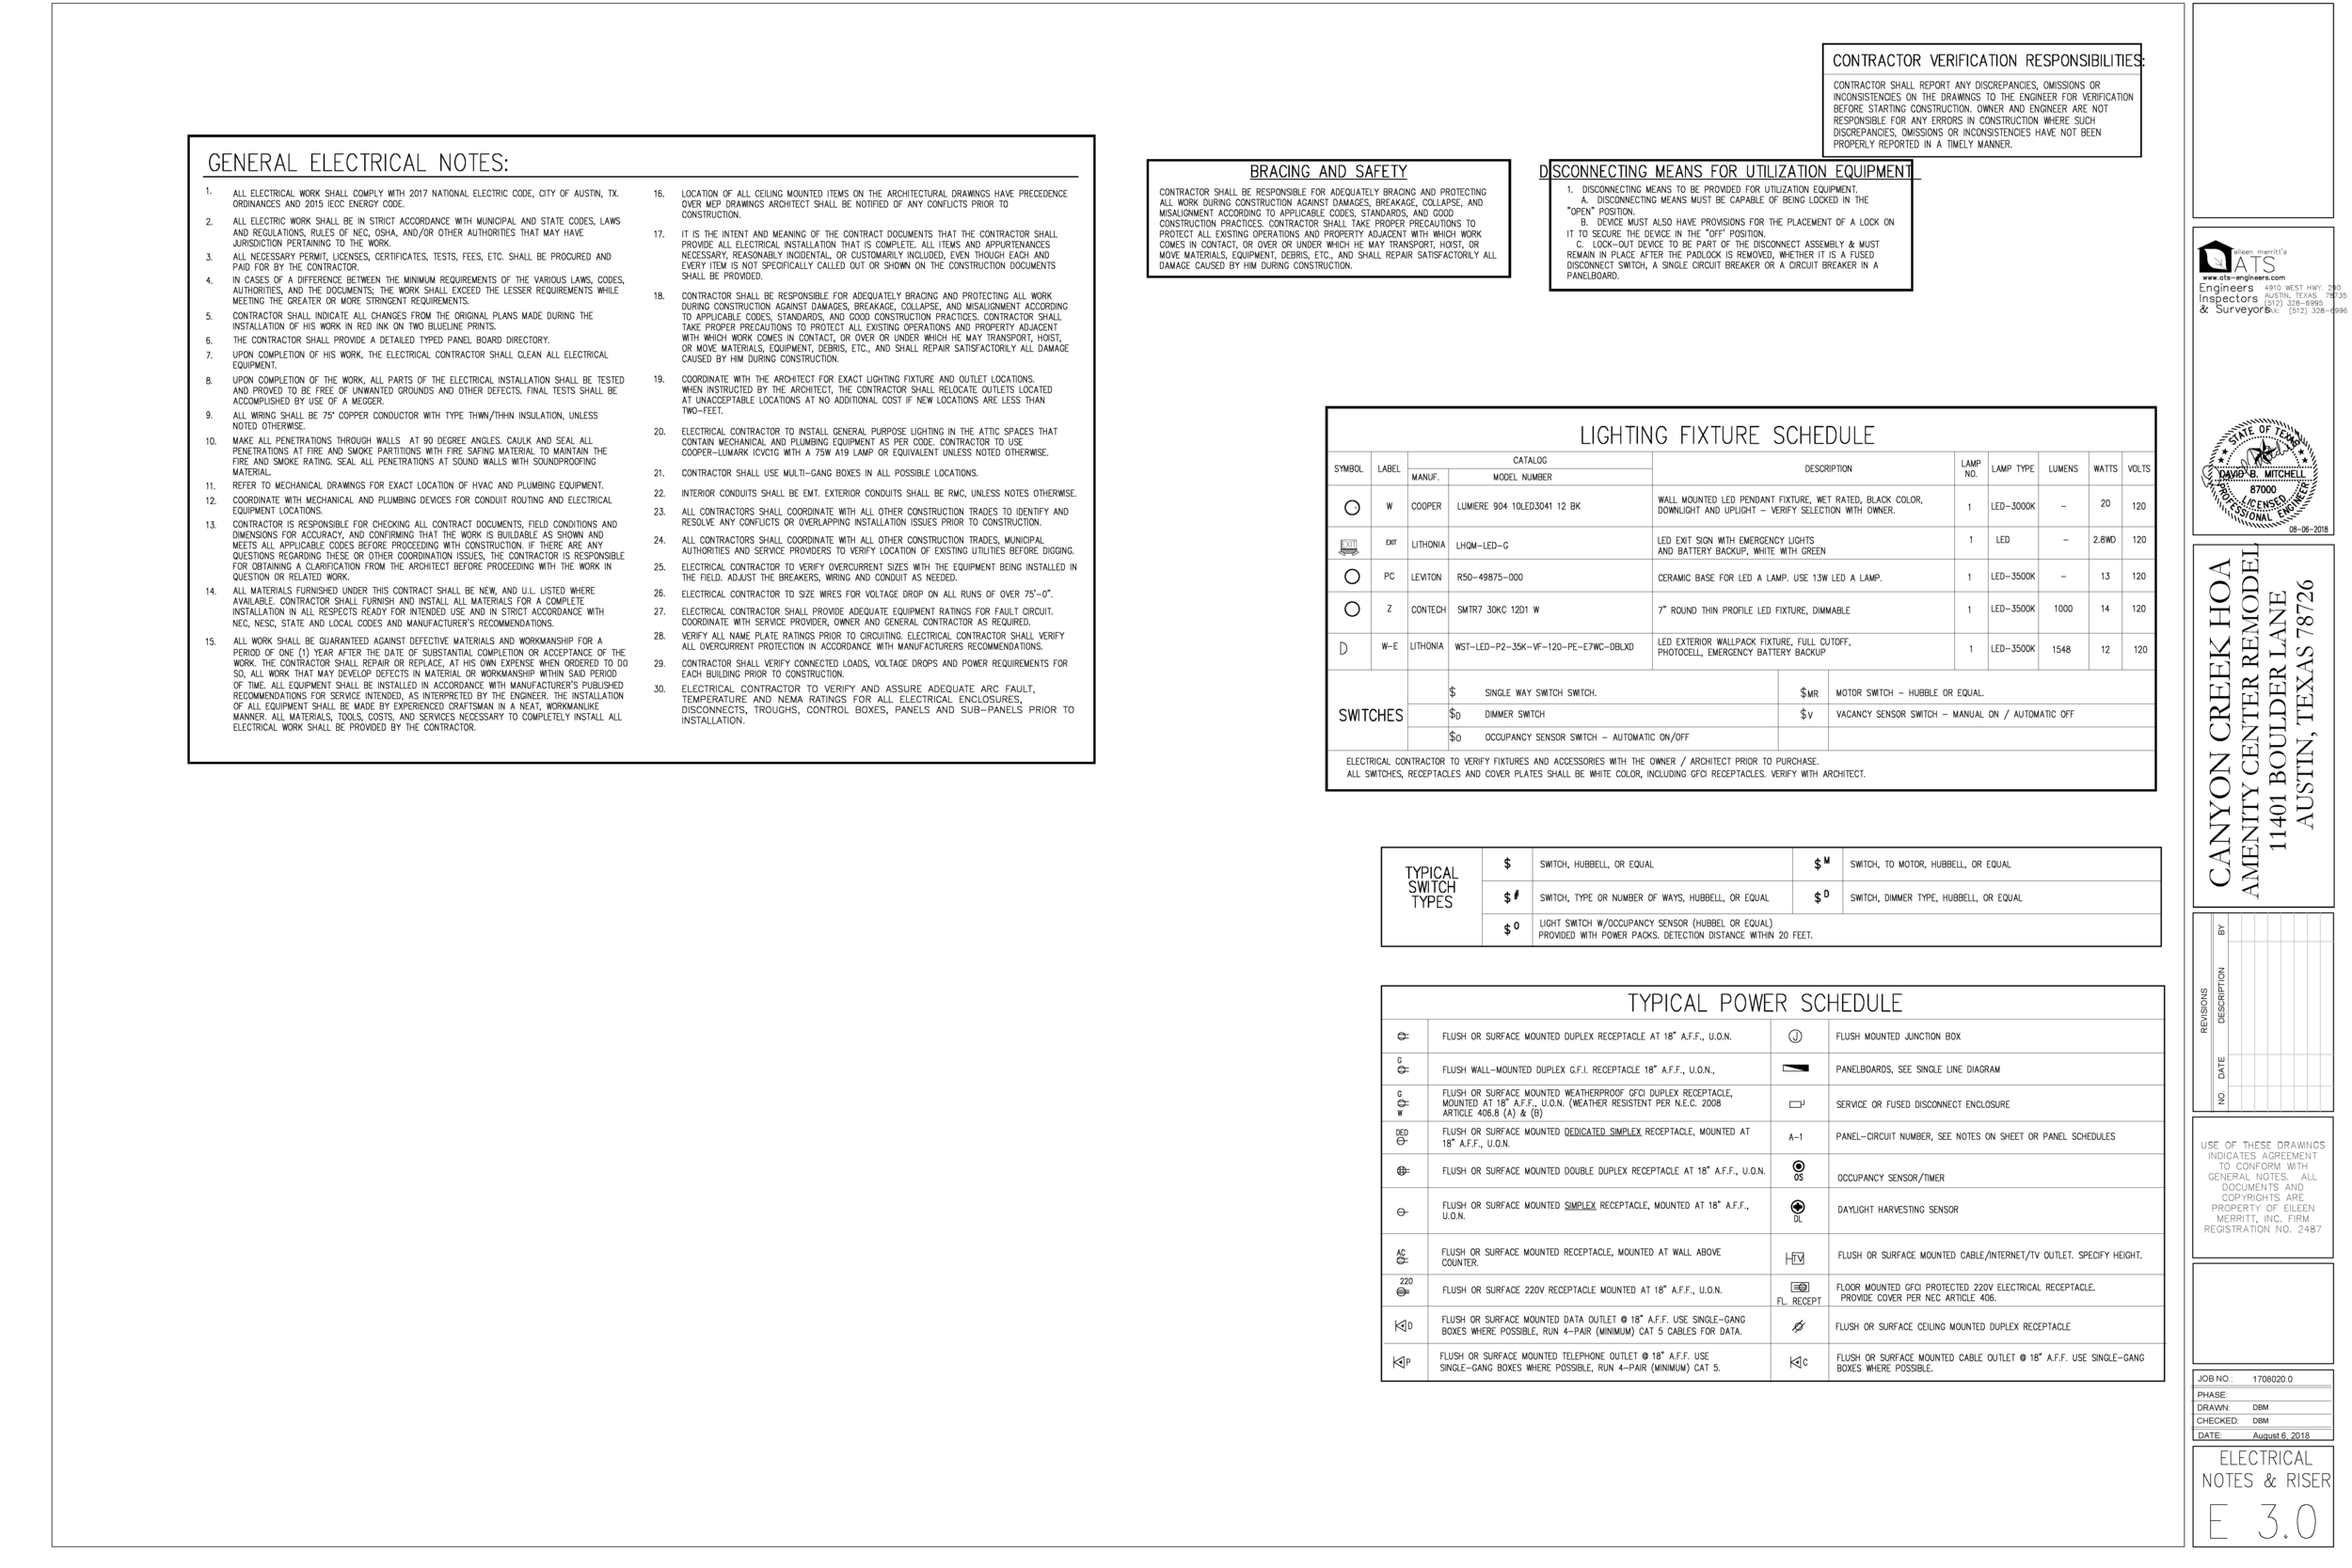 2018-08-06 (Draw 3) 11401 CANYON CREEK - MEP - V.2 PERMIT_Page_12.png